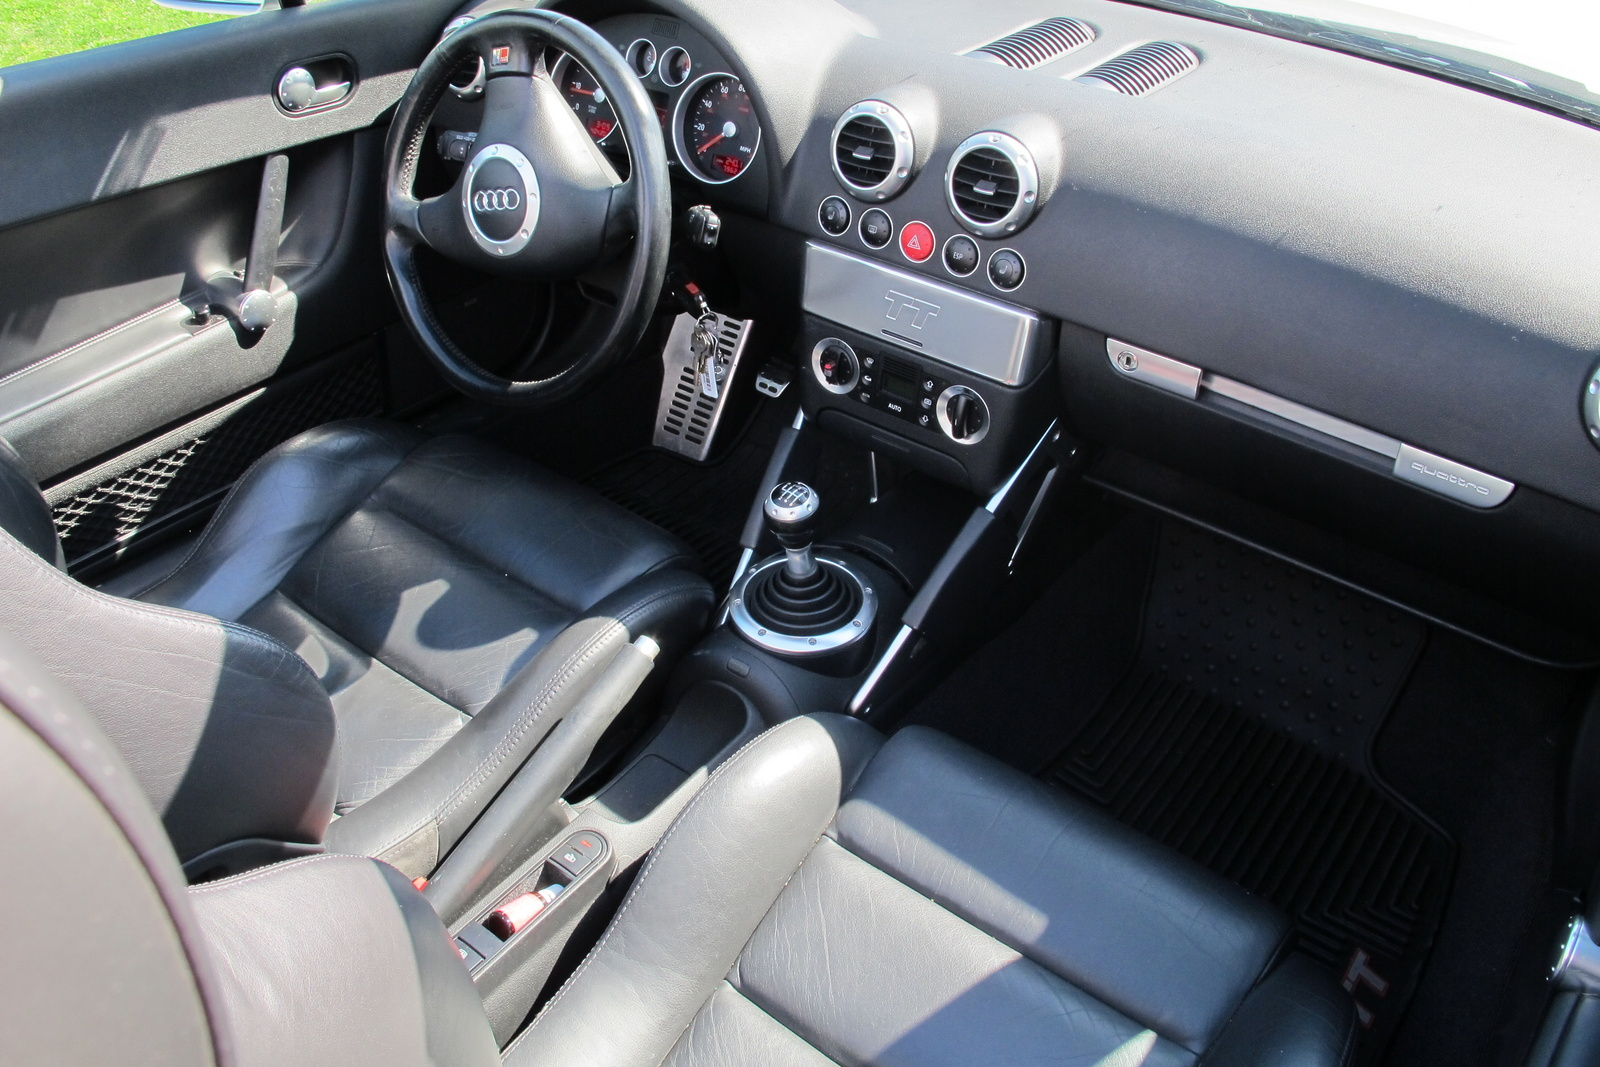 2001 audi tt interior pictures cargurus. Black Bedroom Furniture Sets. Home Design Ideas